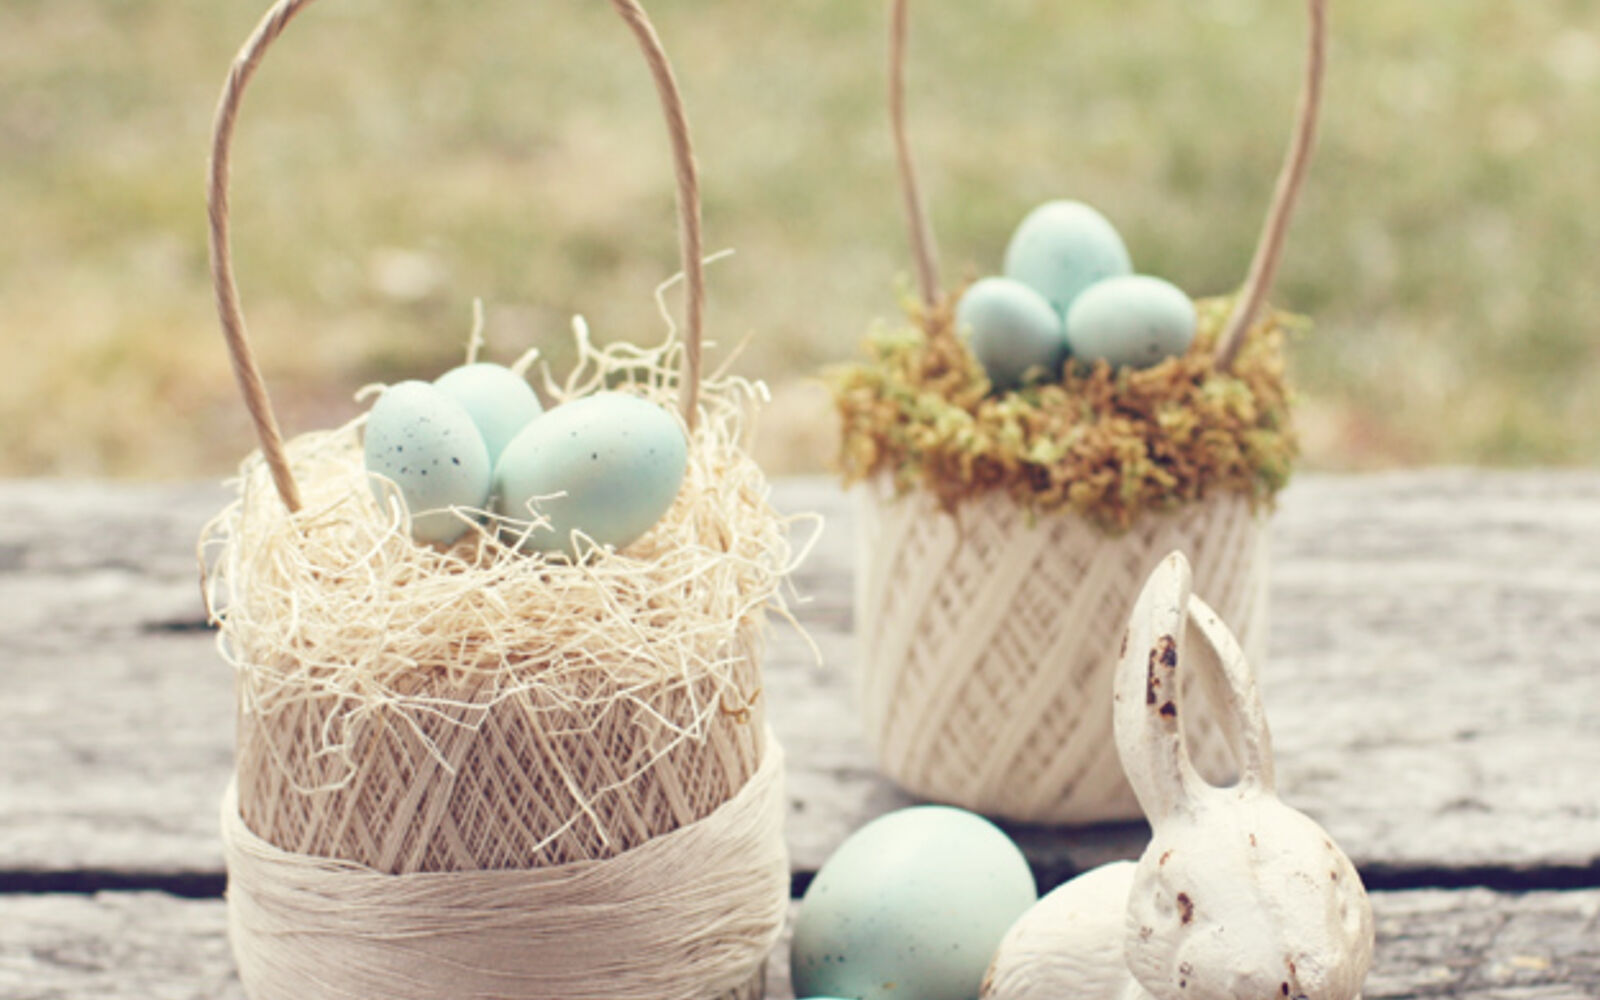 s the cutest ways to decorate your front porch for easter, Spring Thread Ball Egg Basket